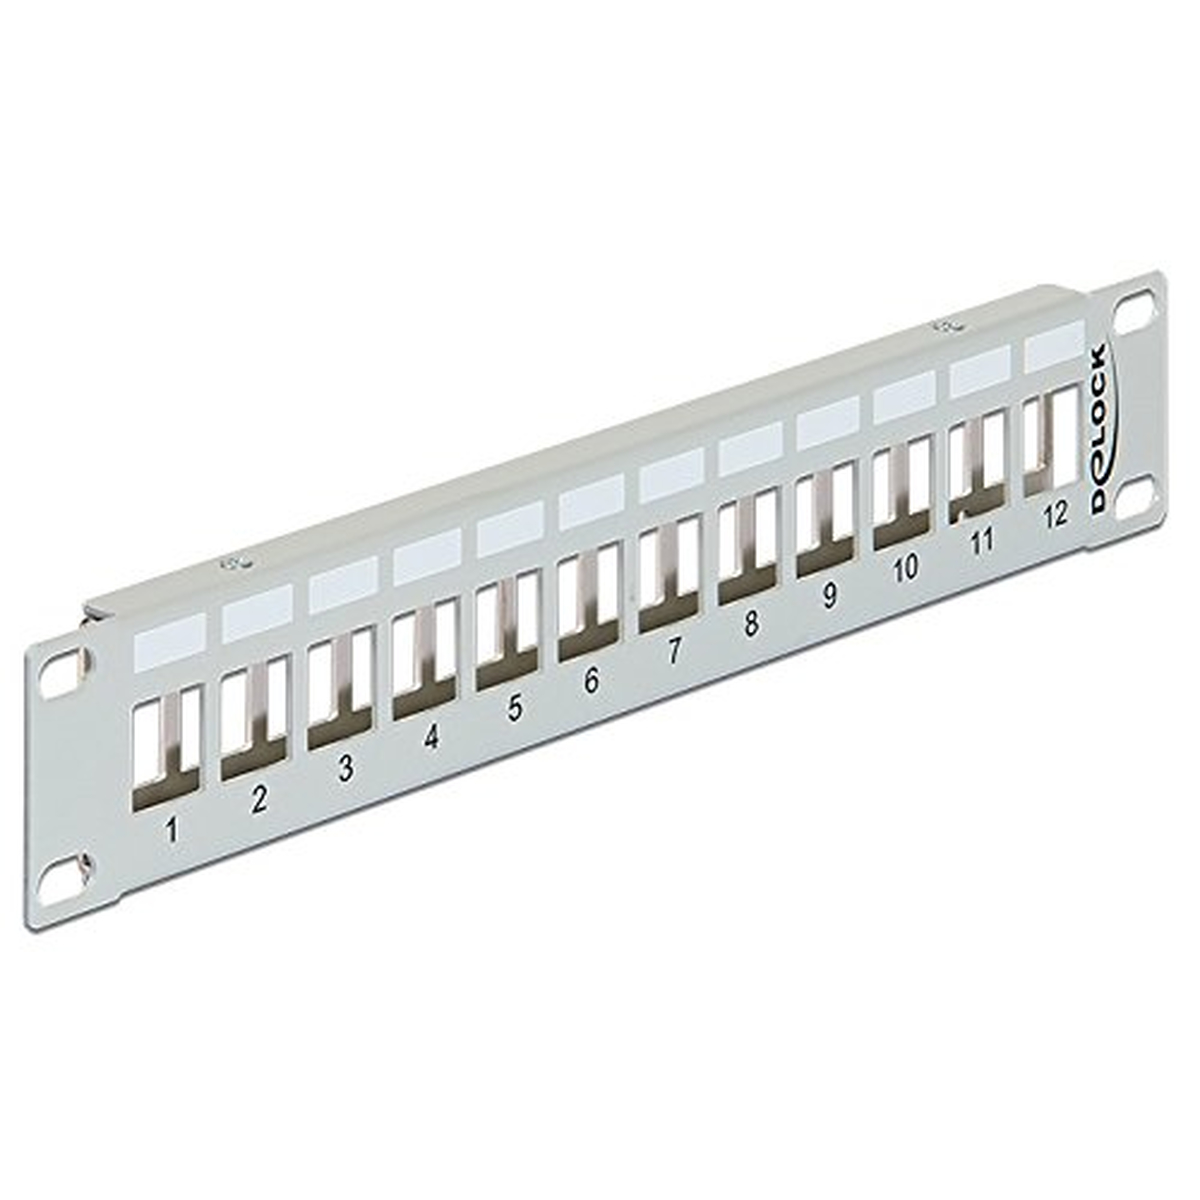 DeLOCK Keystone 10 Patchpanel 12 Port Metall grau